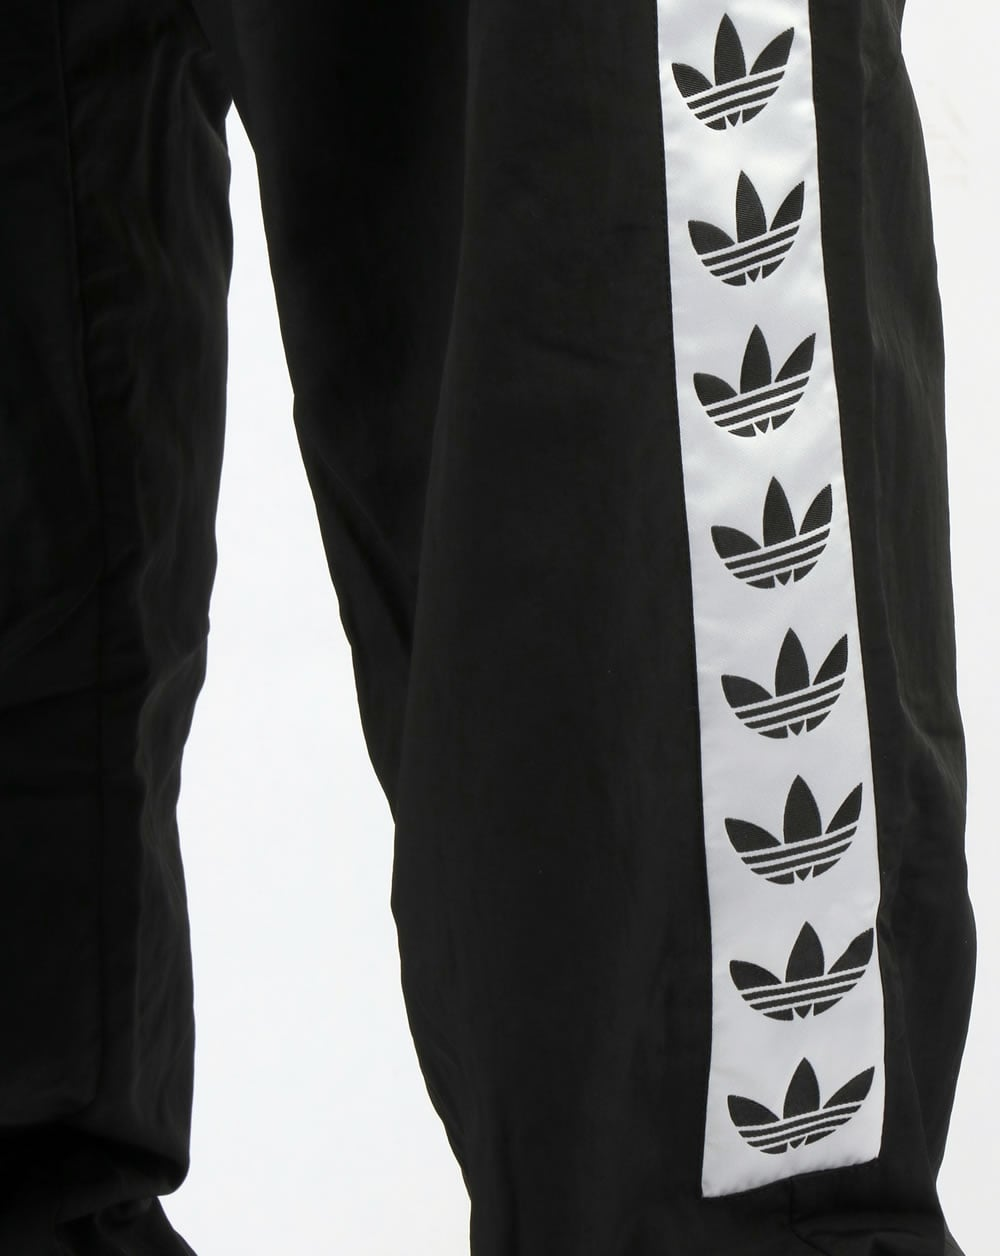 Adidas Originals Tnt Tape Wind Pants Black/white